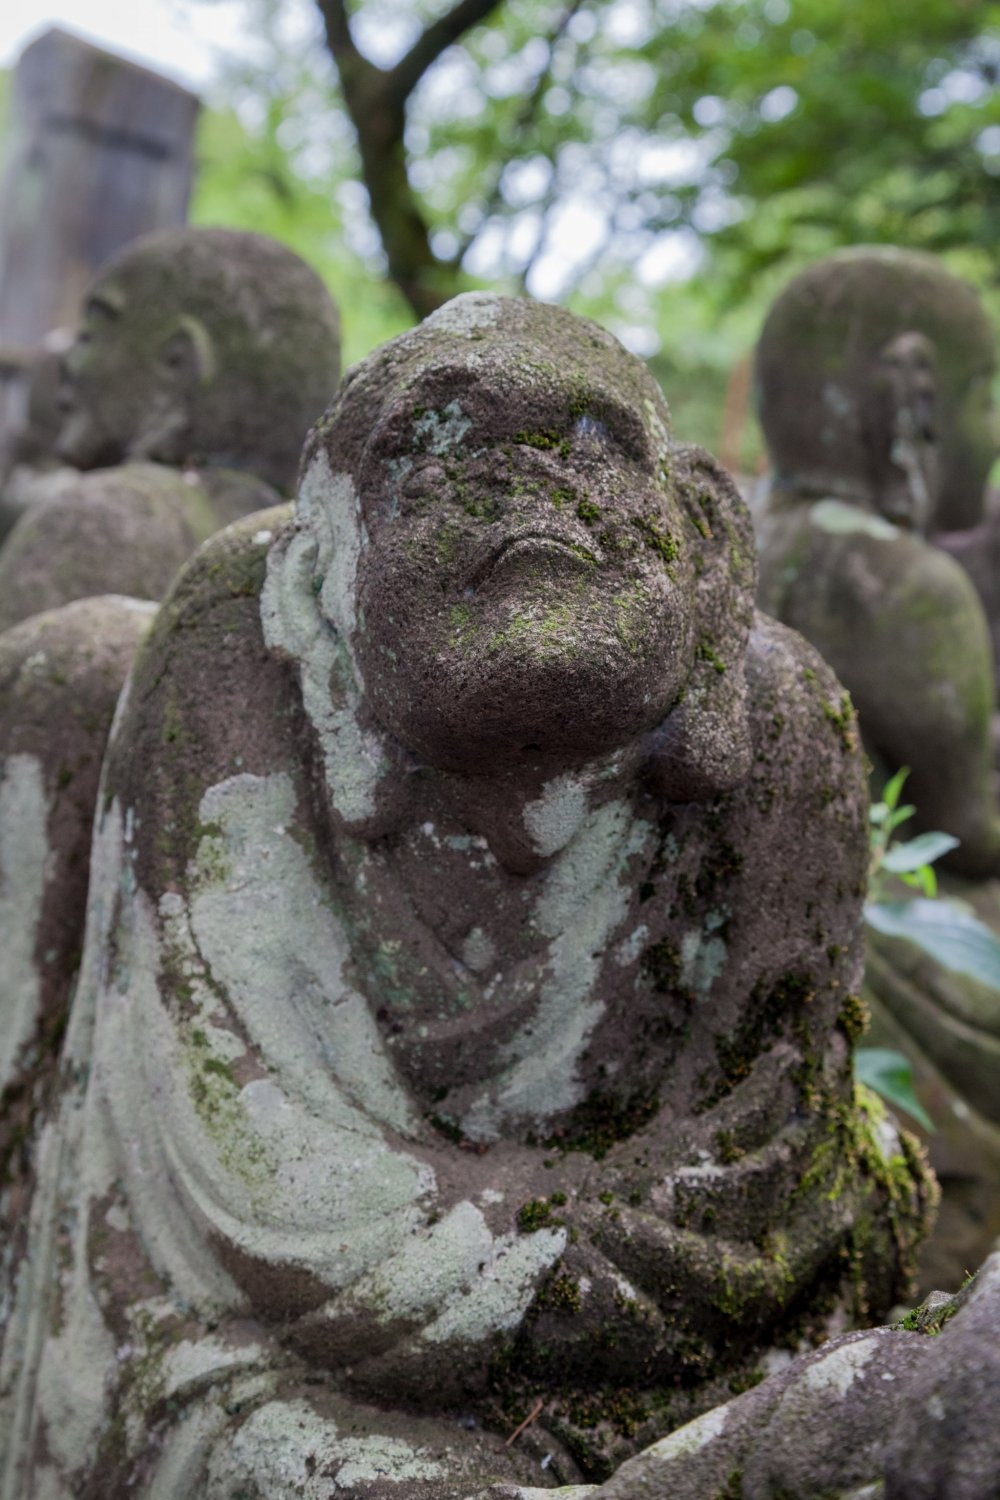 Every statue was carved with a unique facial expression